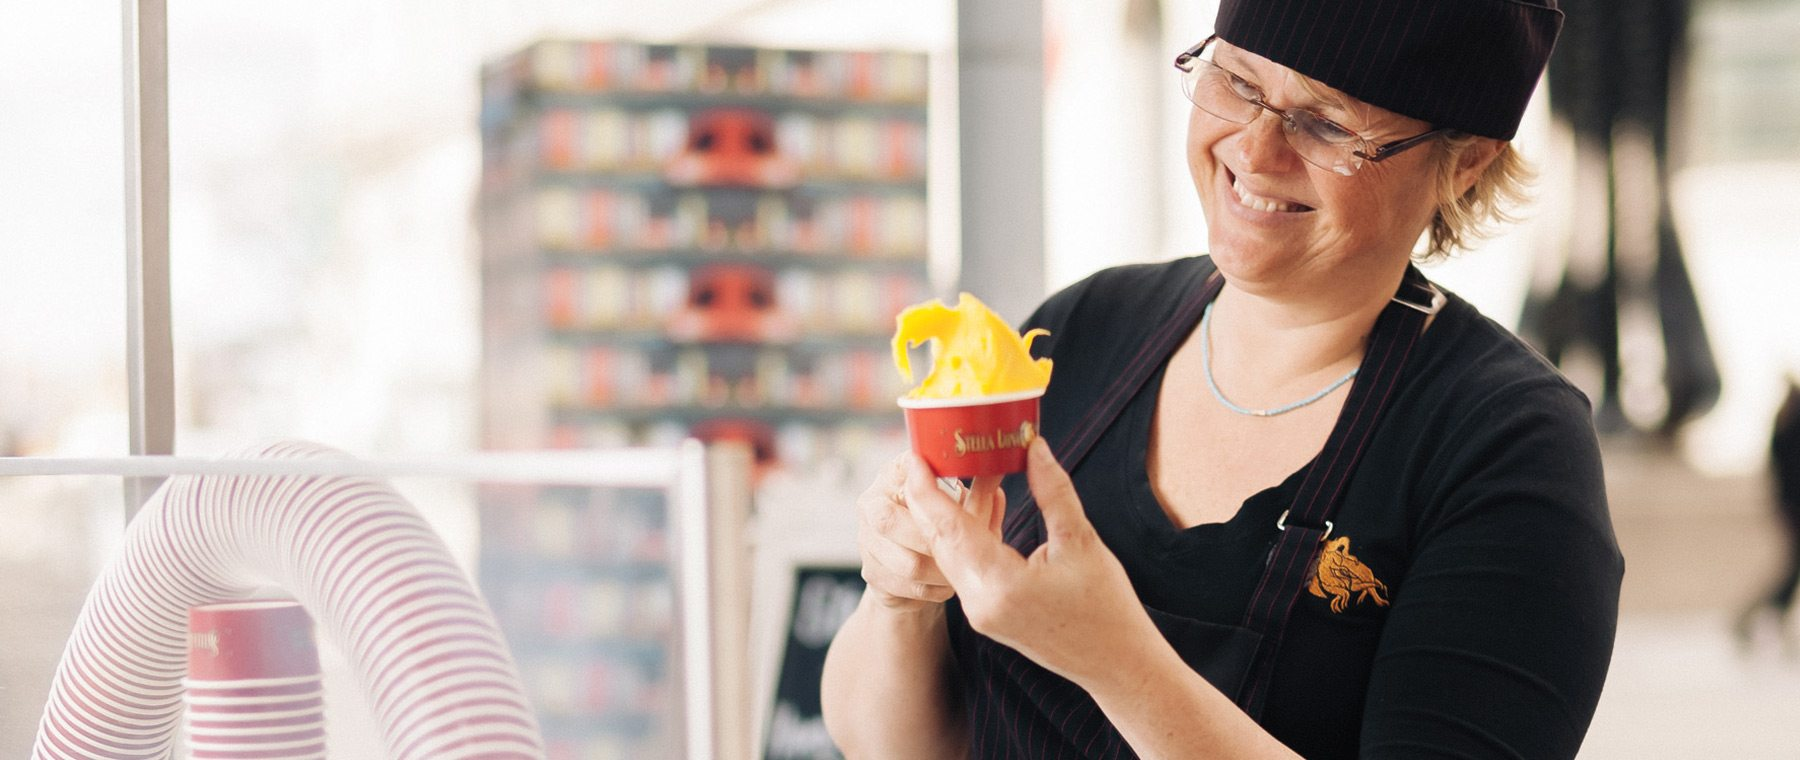 City Bites Insider: Stella Luna wins big at Gelato World Tour